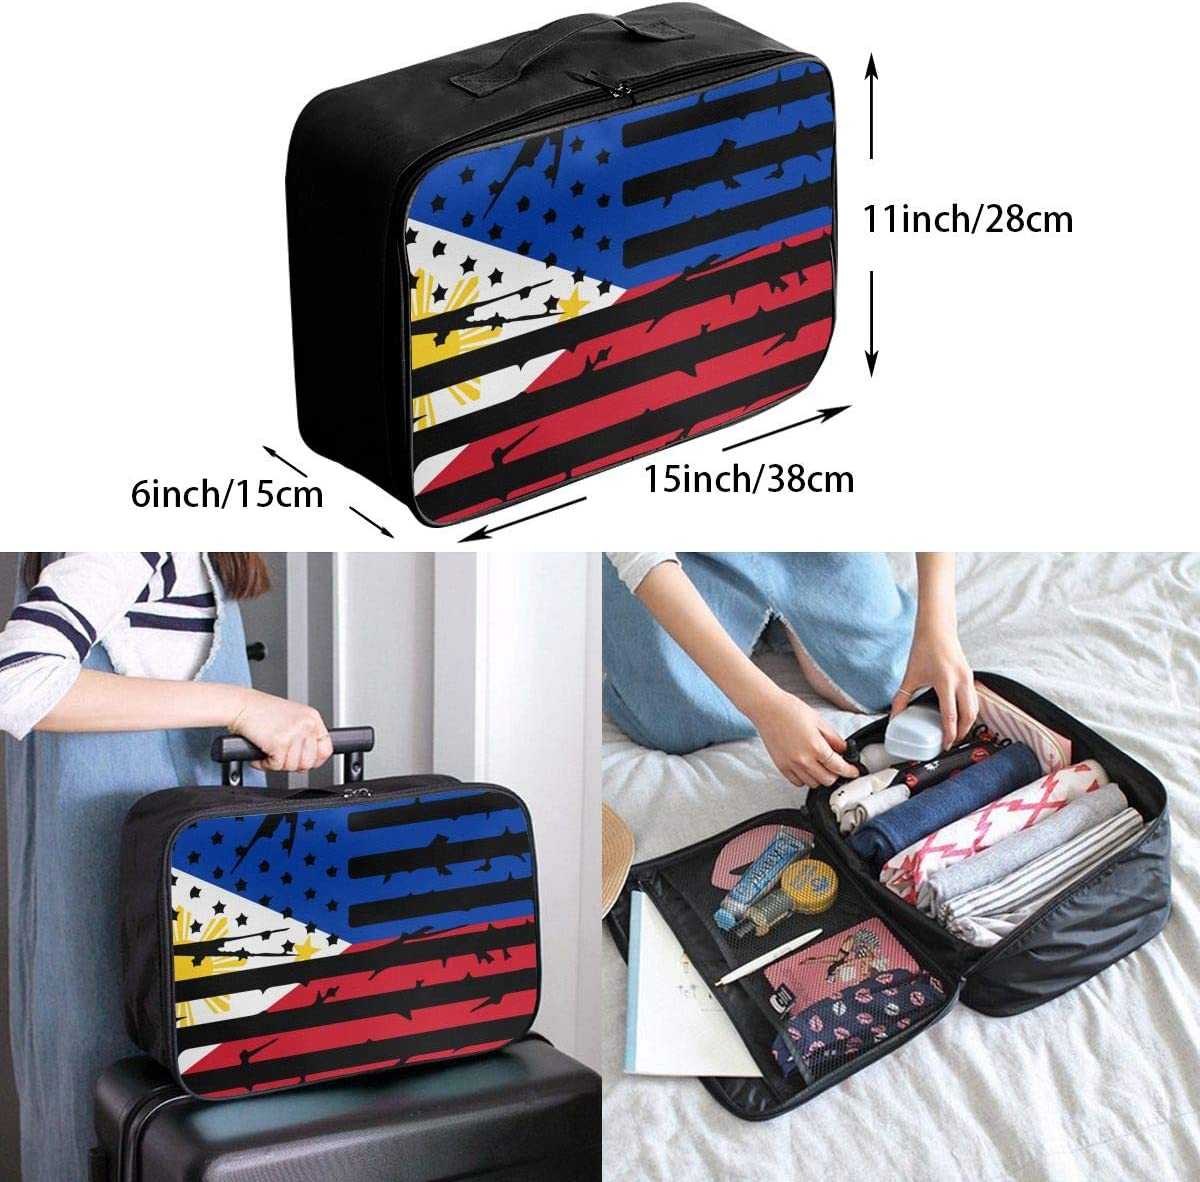 Philippines American Flag Overnight Carry On Luggage Waterproof Fashion Travel Bag Lightweight Suitcases